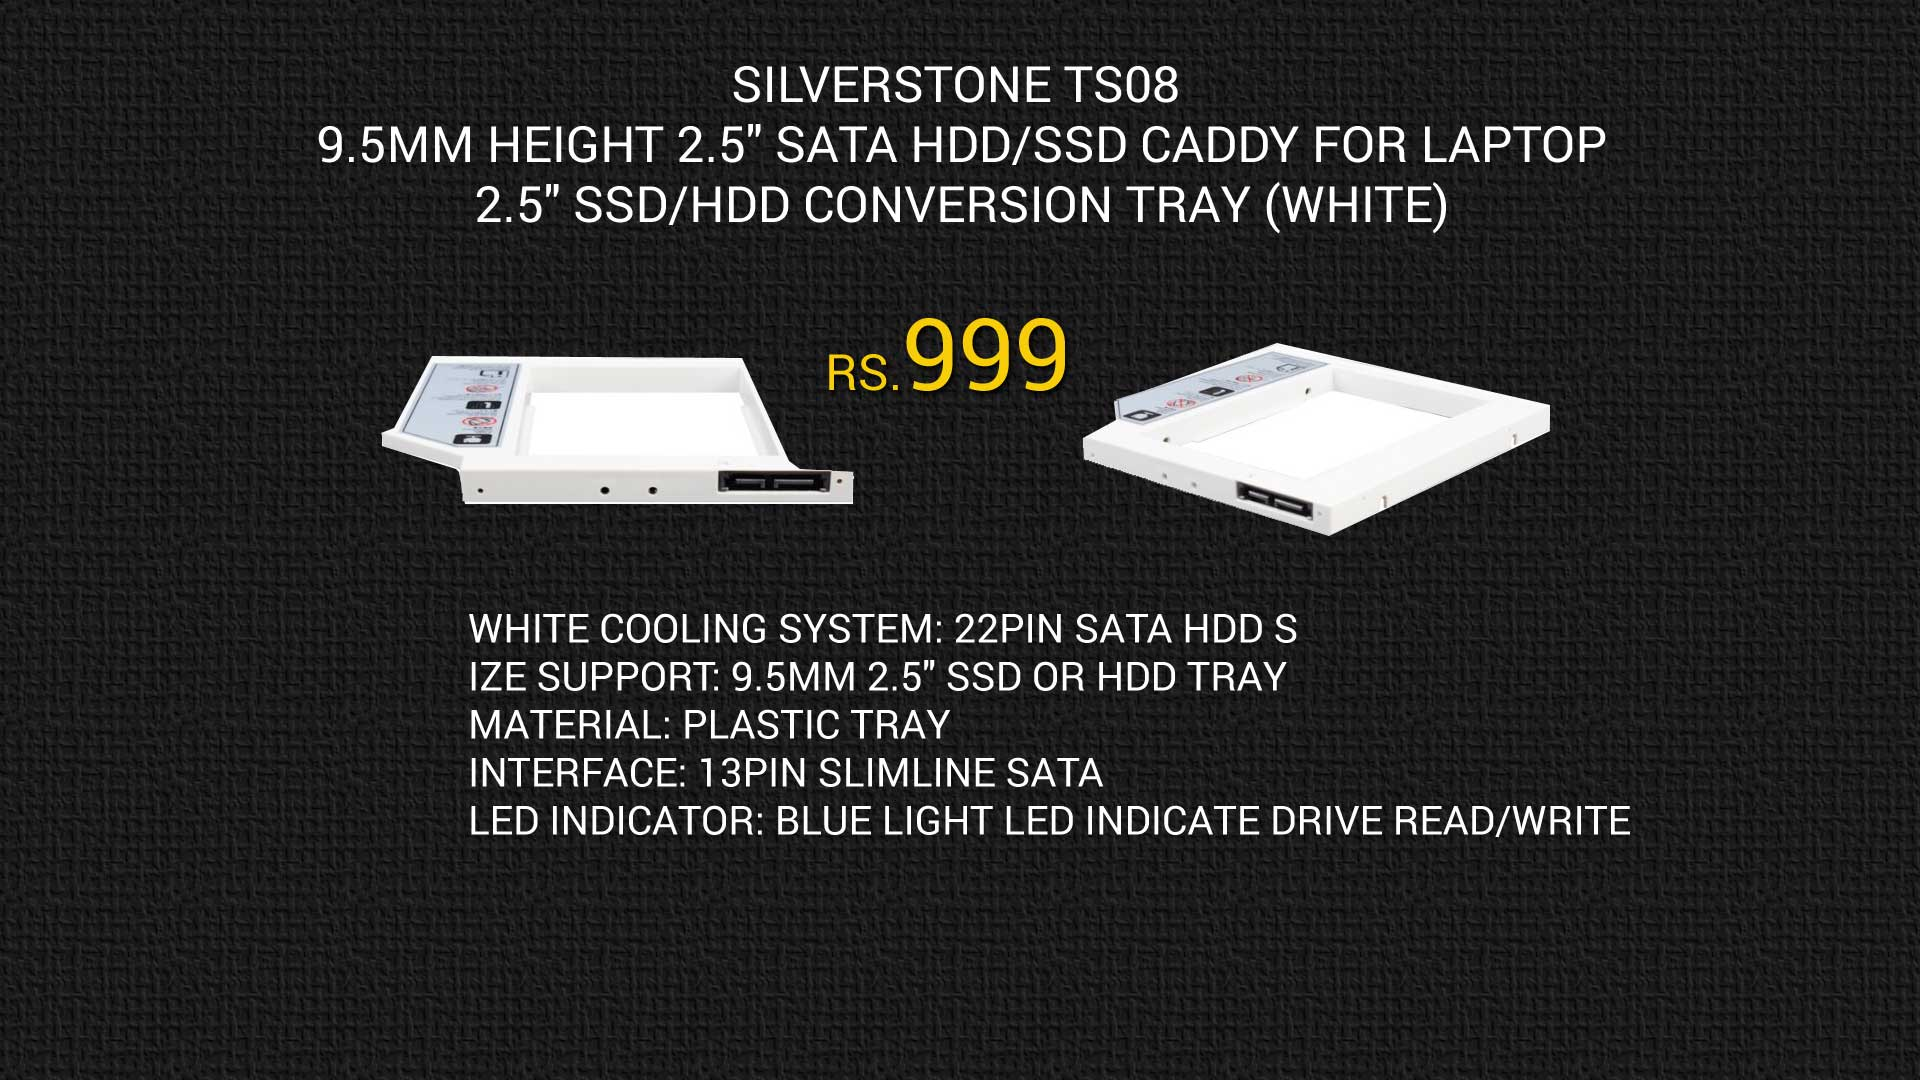 SilverStone-TS08-9.5mm-Height-2.5-SATA-HDD-SSD-Caddy-for-Laptop1